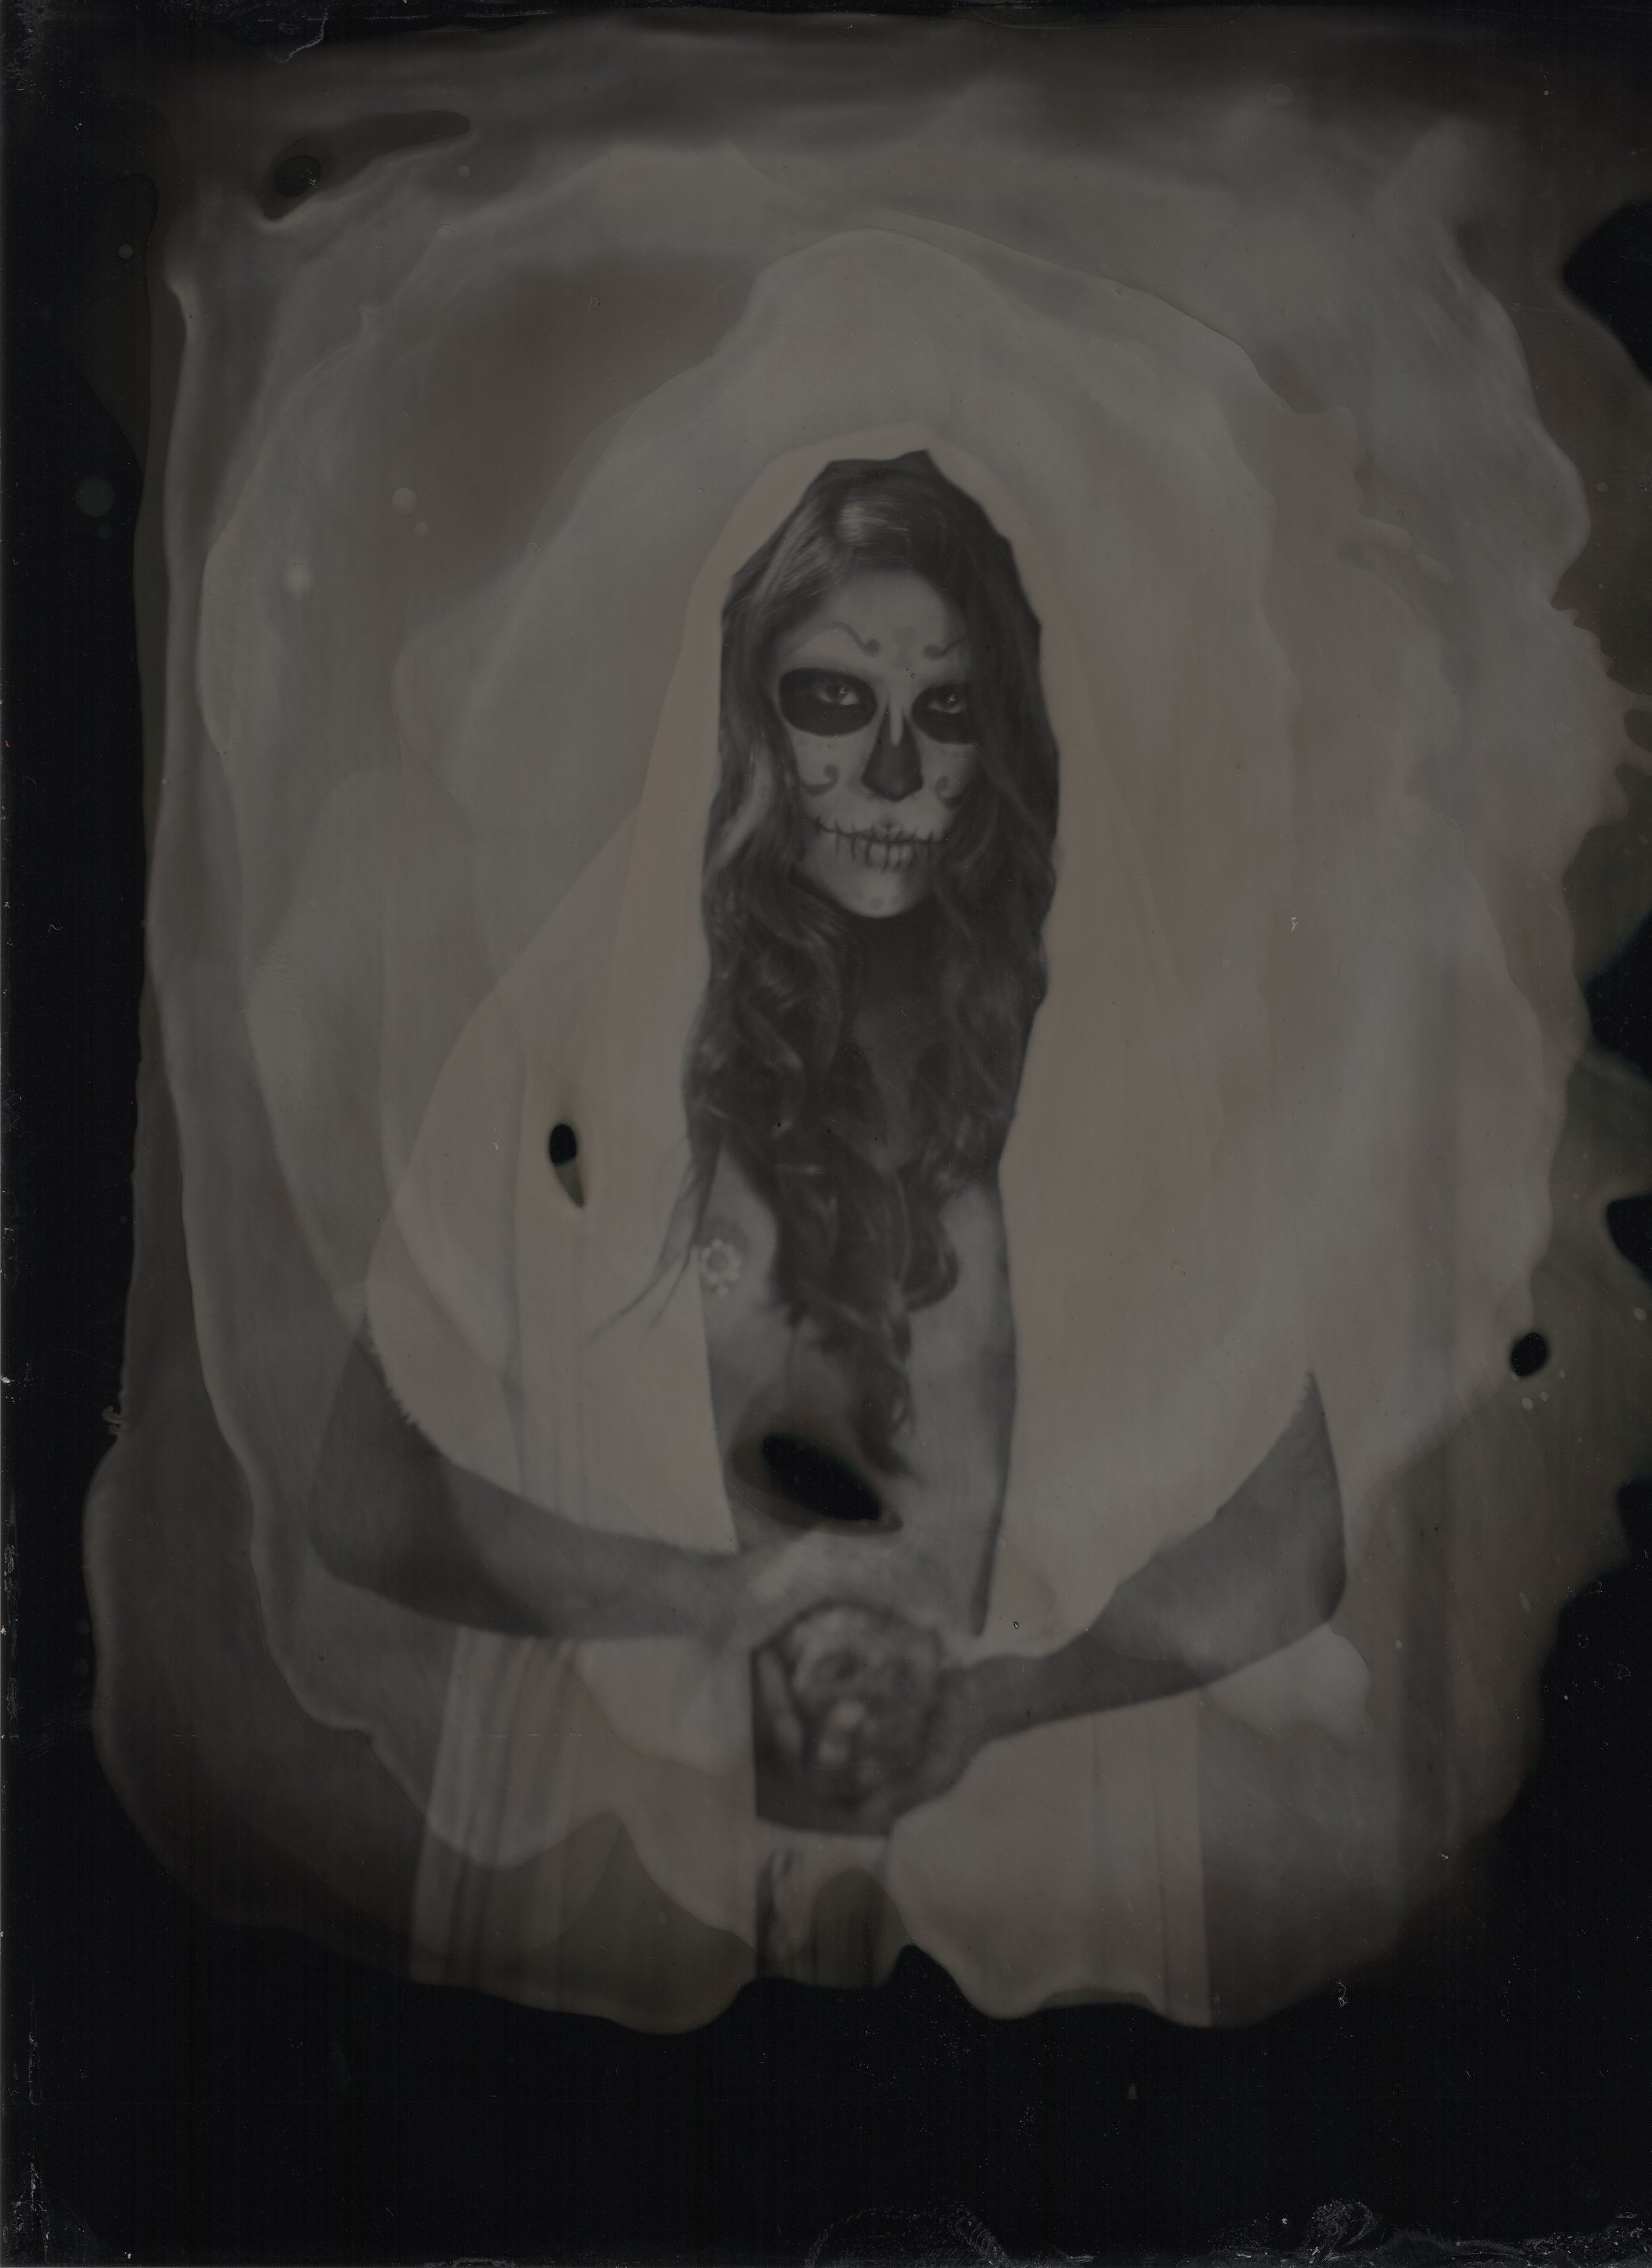 When talking to Photographer Dana Rogers about doing a tintype photo shoot with makeup I knew I wanted to do something fitting with the look and style that would fit. I wanted to do something timeless, something that looked like it existed when the camera was made back in the 1870's. It didn't take us long to land on Dia De Los Muertos or Day of the Dead.  I knew straight away that I wanted to use a Mexican model to keep things as authentic as possible. With my good friend and model Casandre Elyse Medel coming in town from Colorado we had one day to get it right. The weather was perfect and watching Dana work was like magic. Tintype photography is such an interesting and beautiful process. This image are scans of the original because the original is one of a kind.  I did this really pretty DOTD makeup with a color pallet I loved using lime greens, yellow, greys, black and white knowing it would be lost in black and white. At first I was a bit disappointed that no one would see that pallet but after I saw the first image processed I could not have been happier. It was like taking a trip in a time machine. I hope you enjoy.